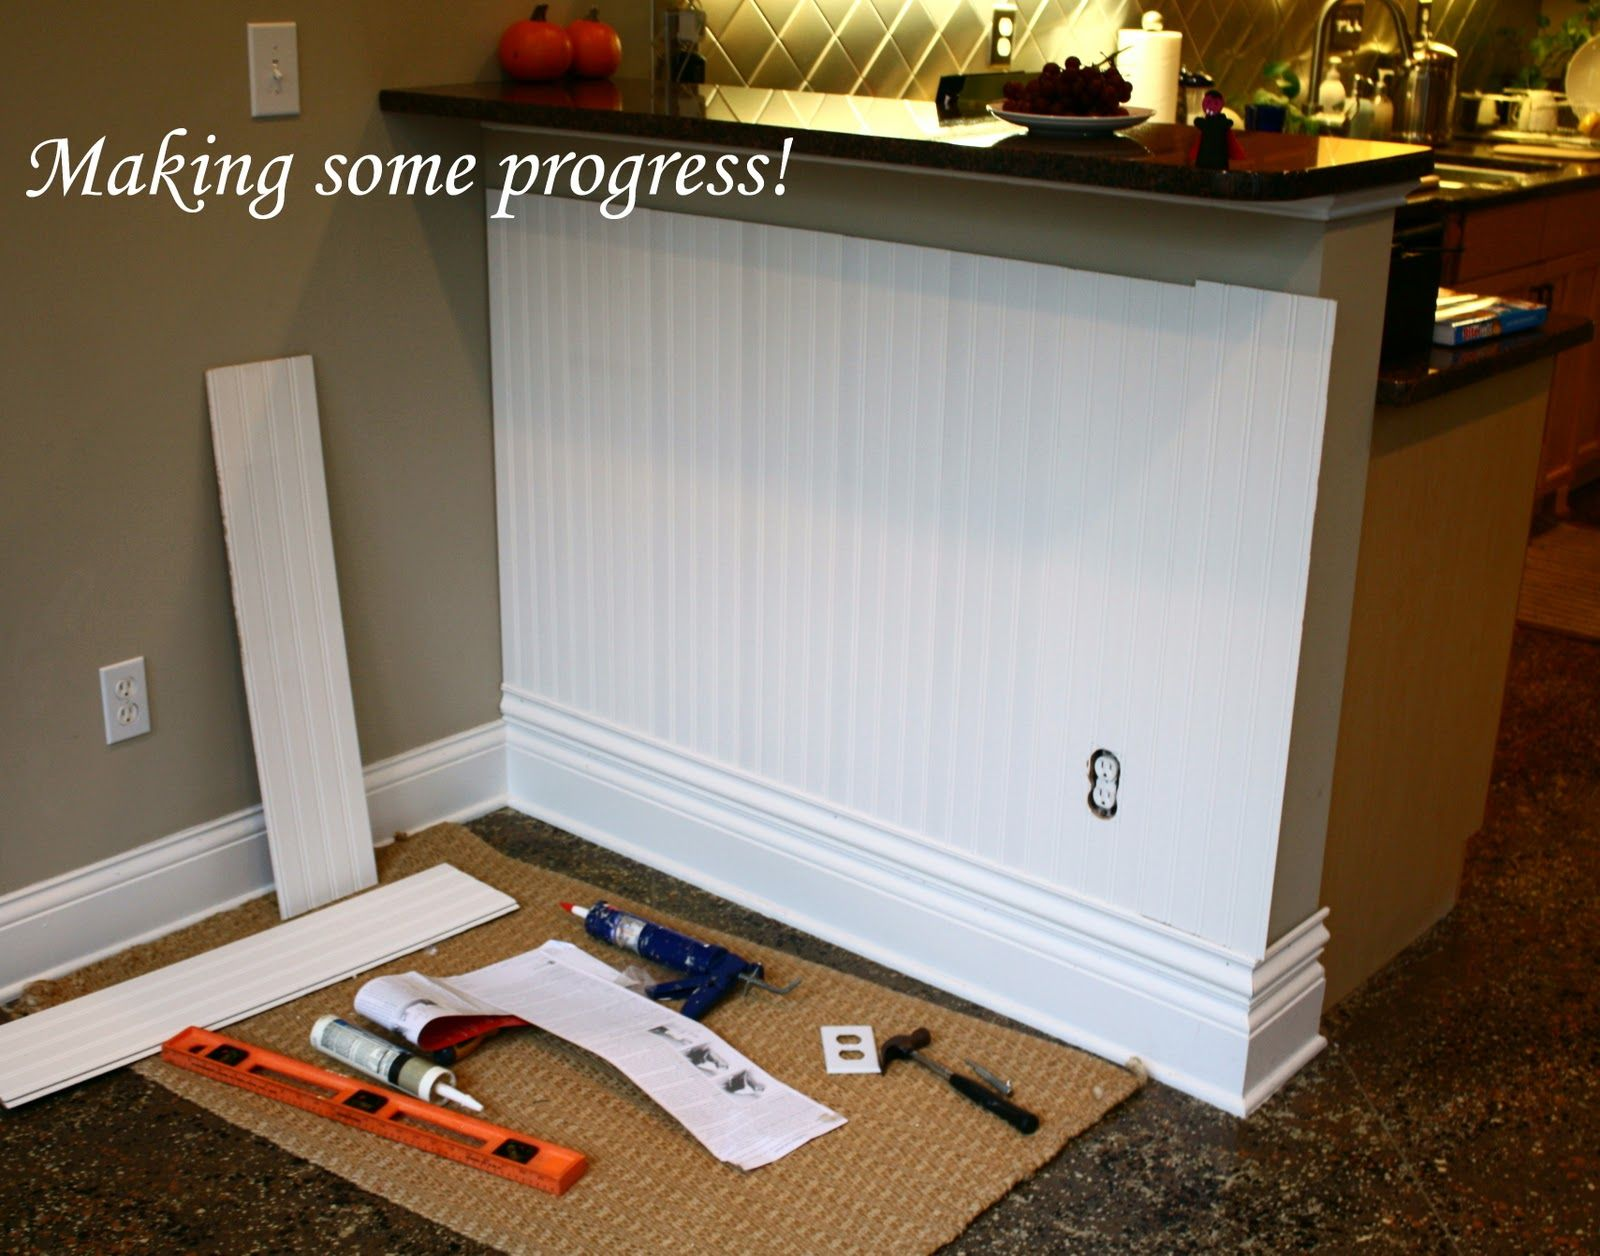 wainscoting on kitchen island - Google Search | Ideas | Pinterest